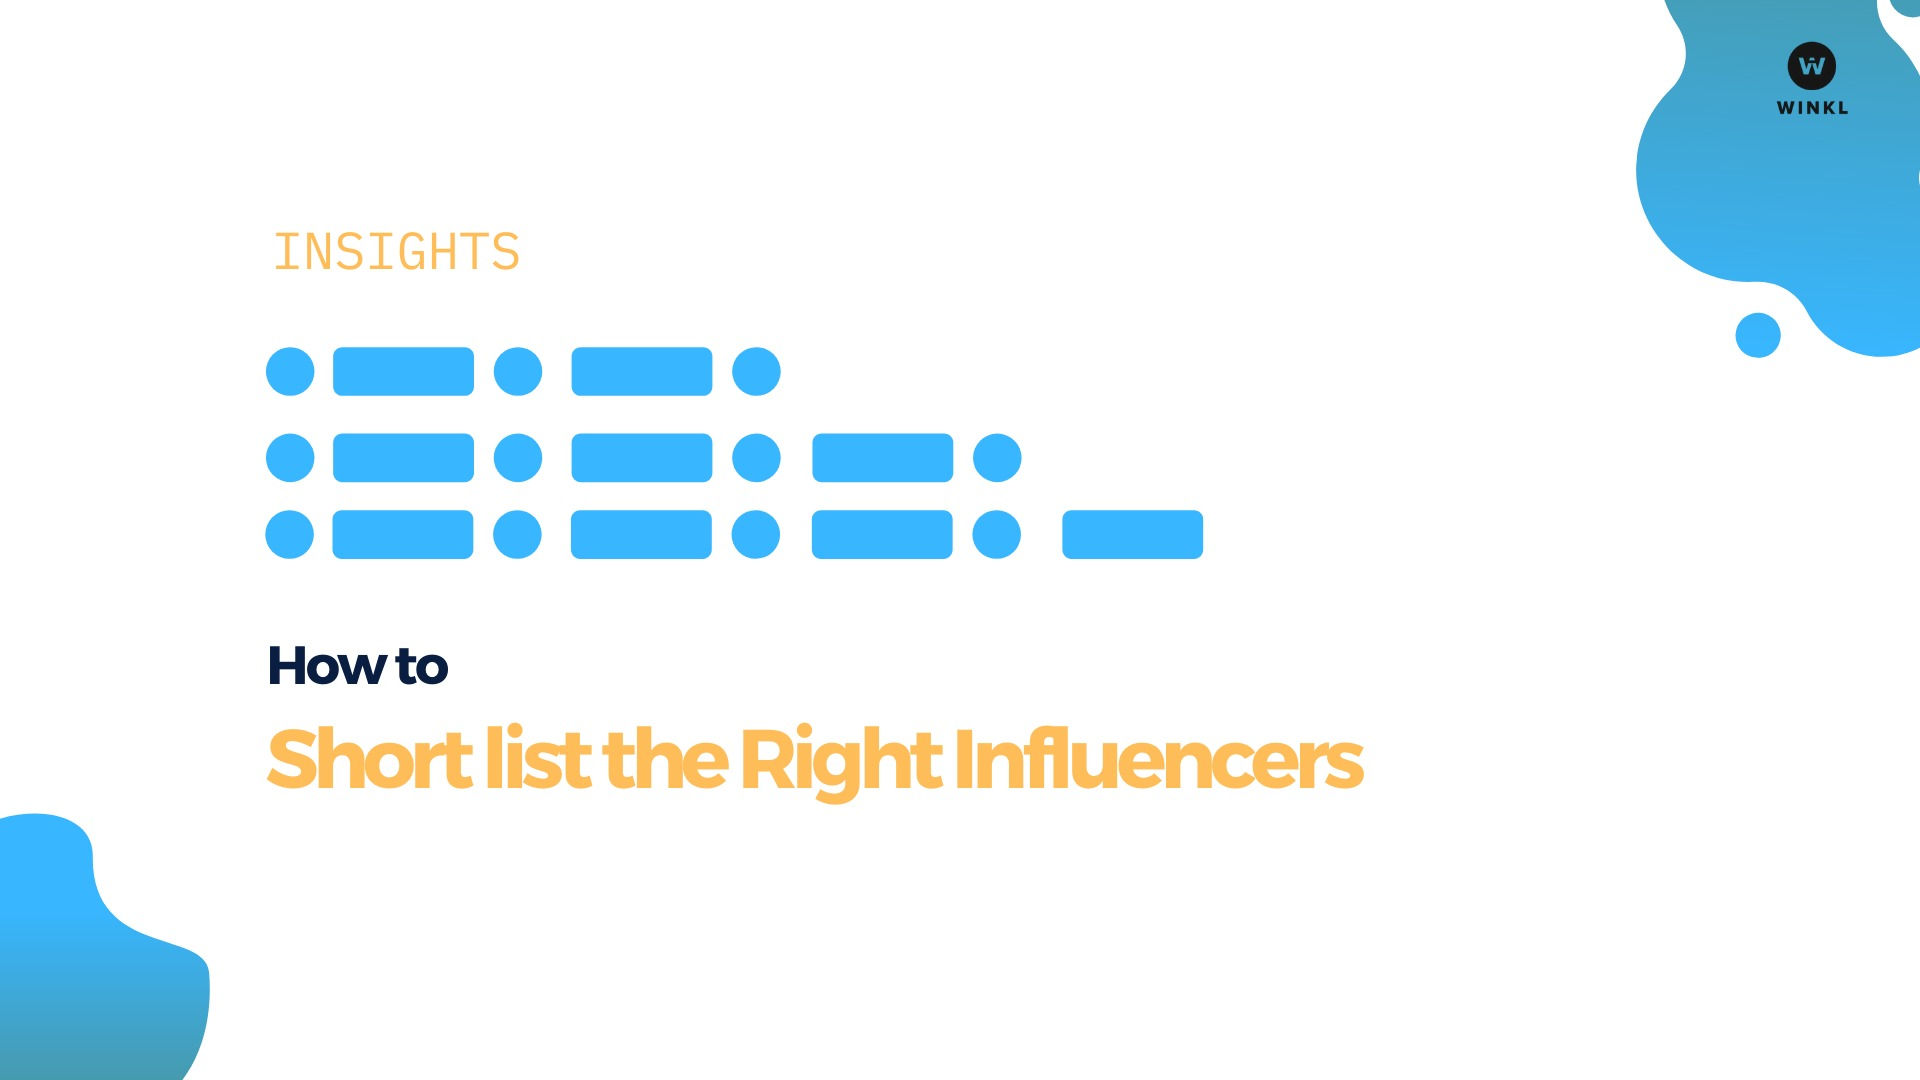 How a brand can shortlist the right influencers for their influencer marketing campaign? - blog by Winkl (An influencer marketing platform)